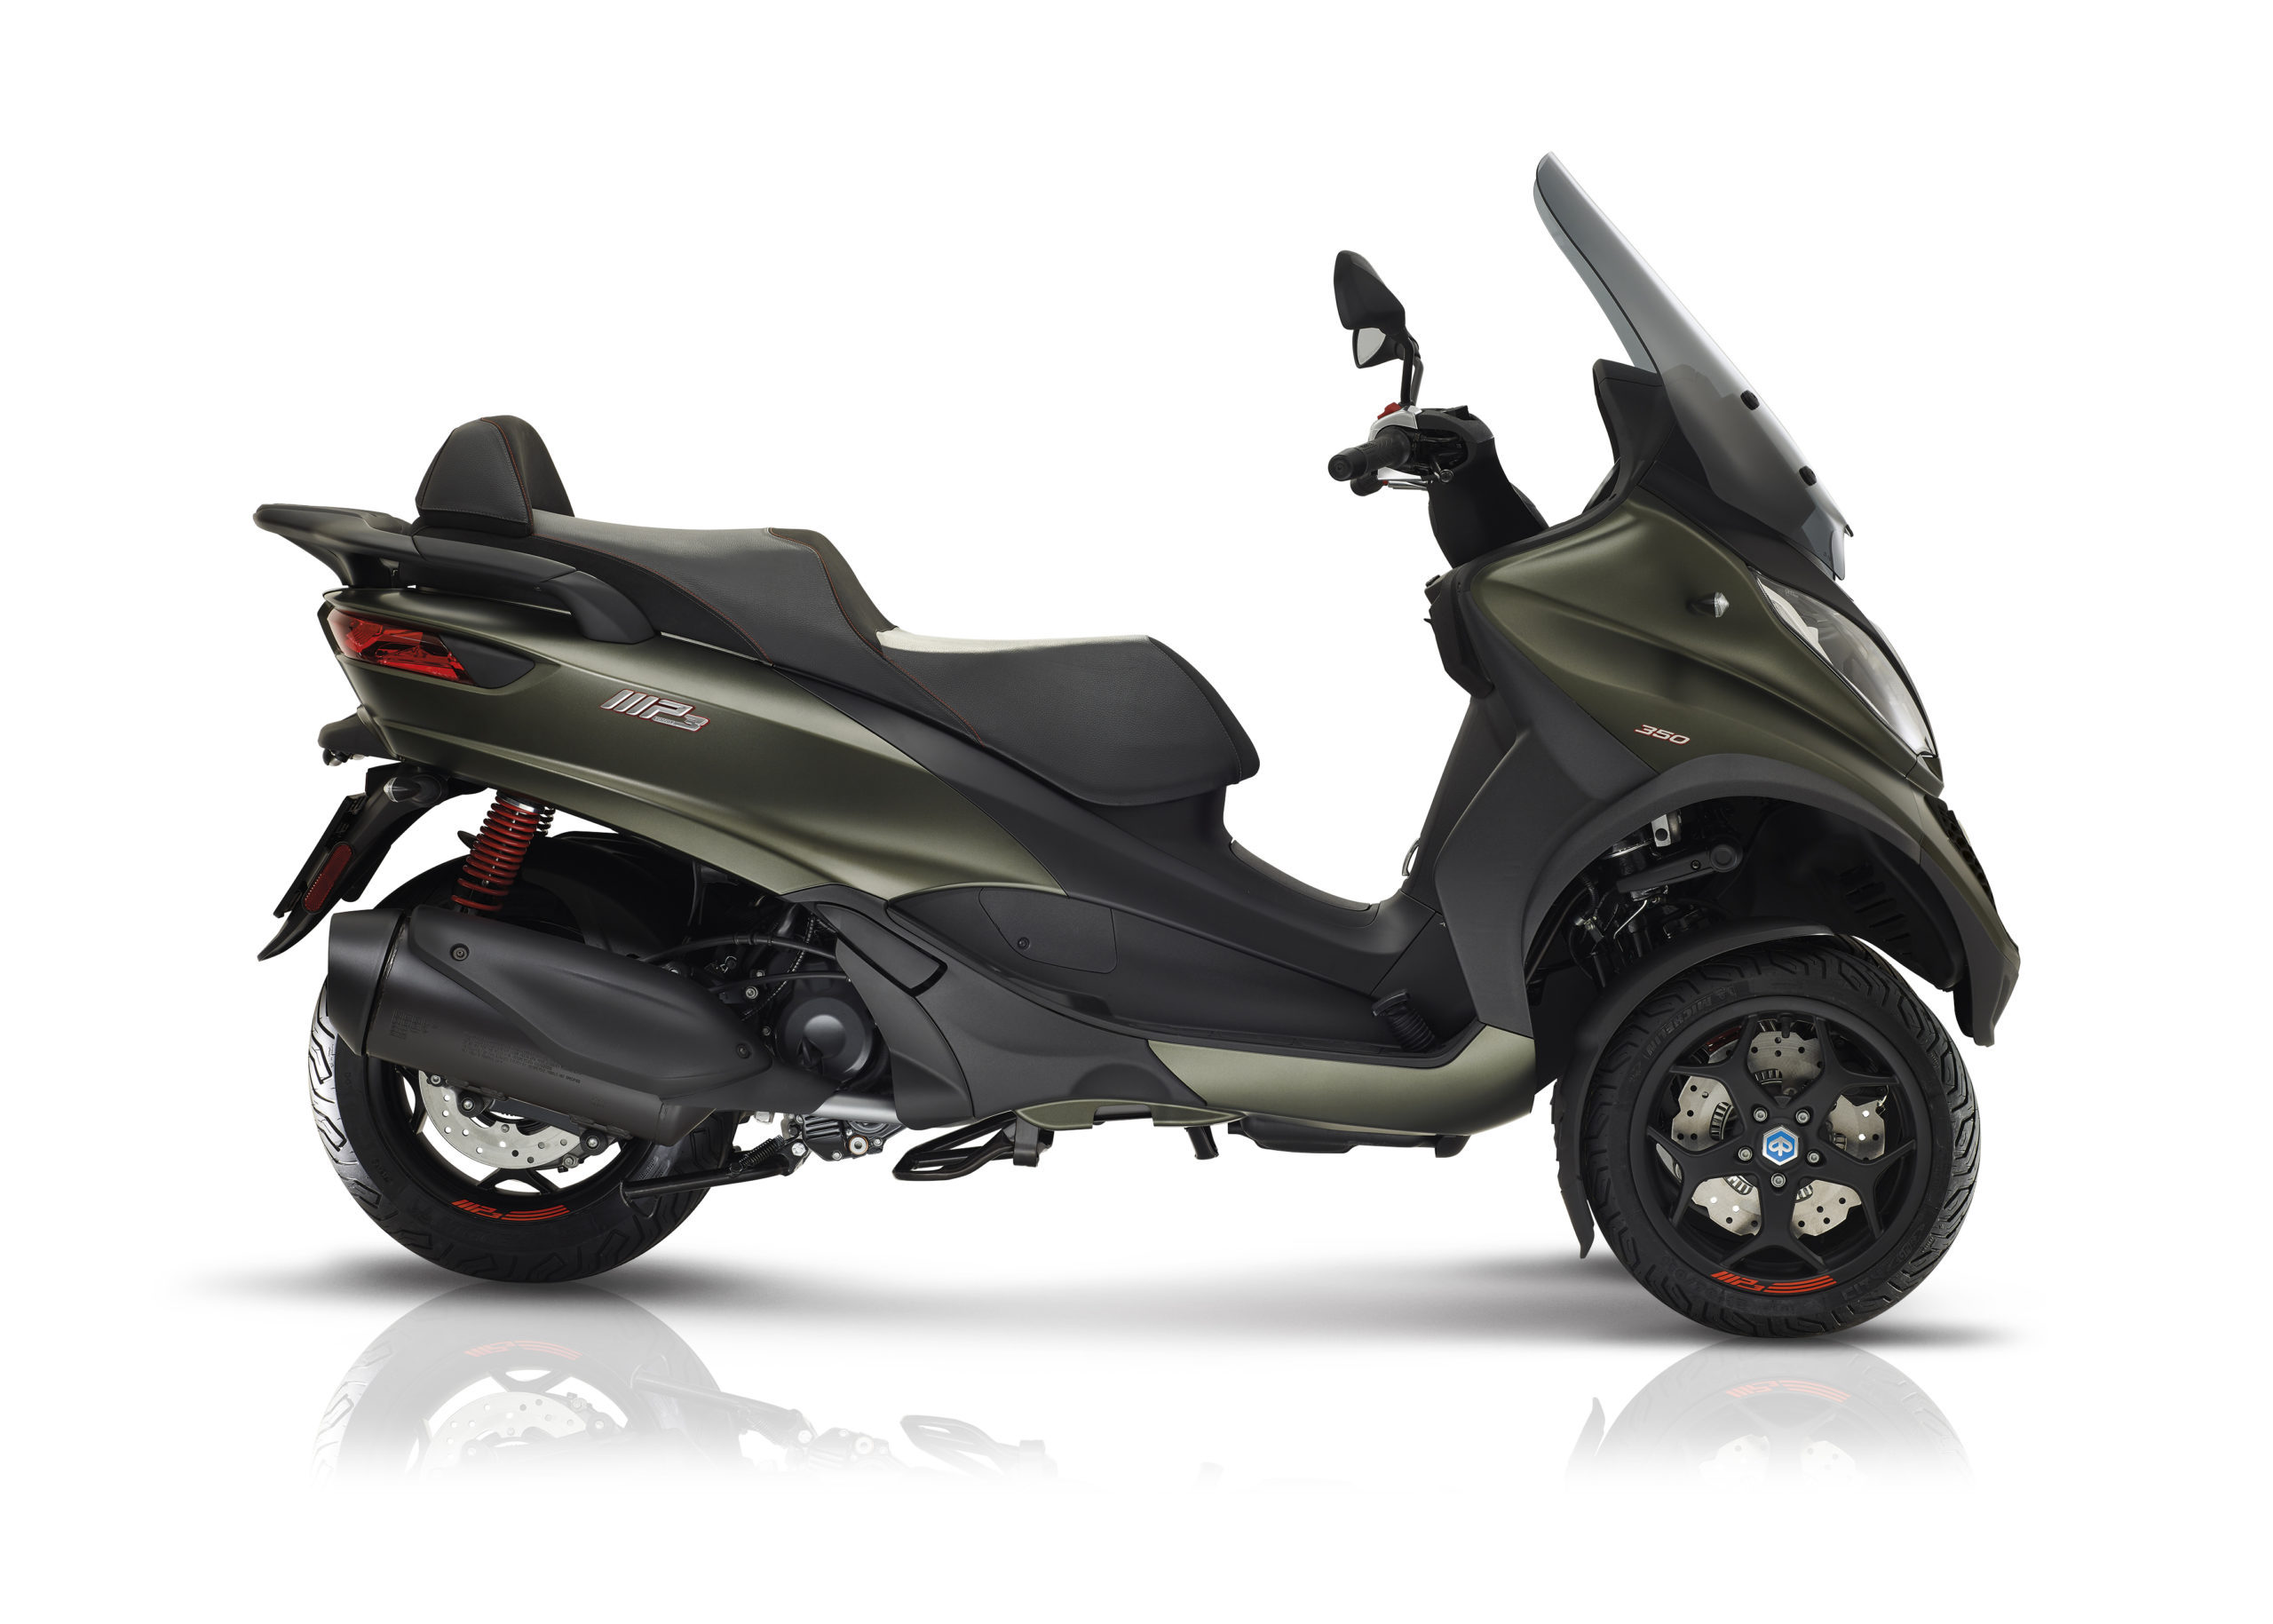 Piaggio MP3 350 sport side rh scaled